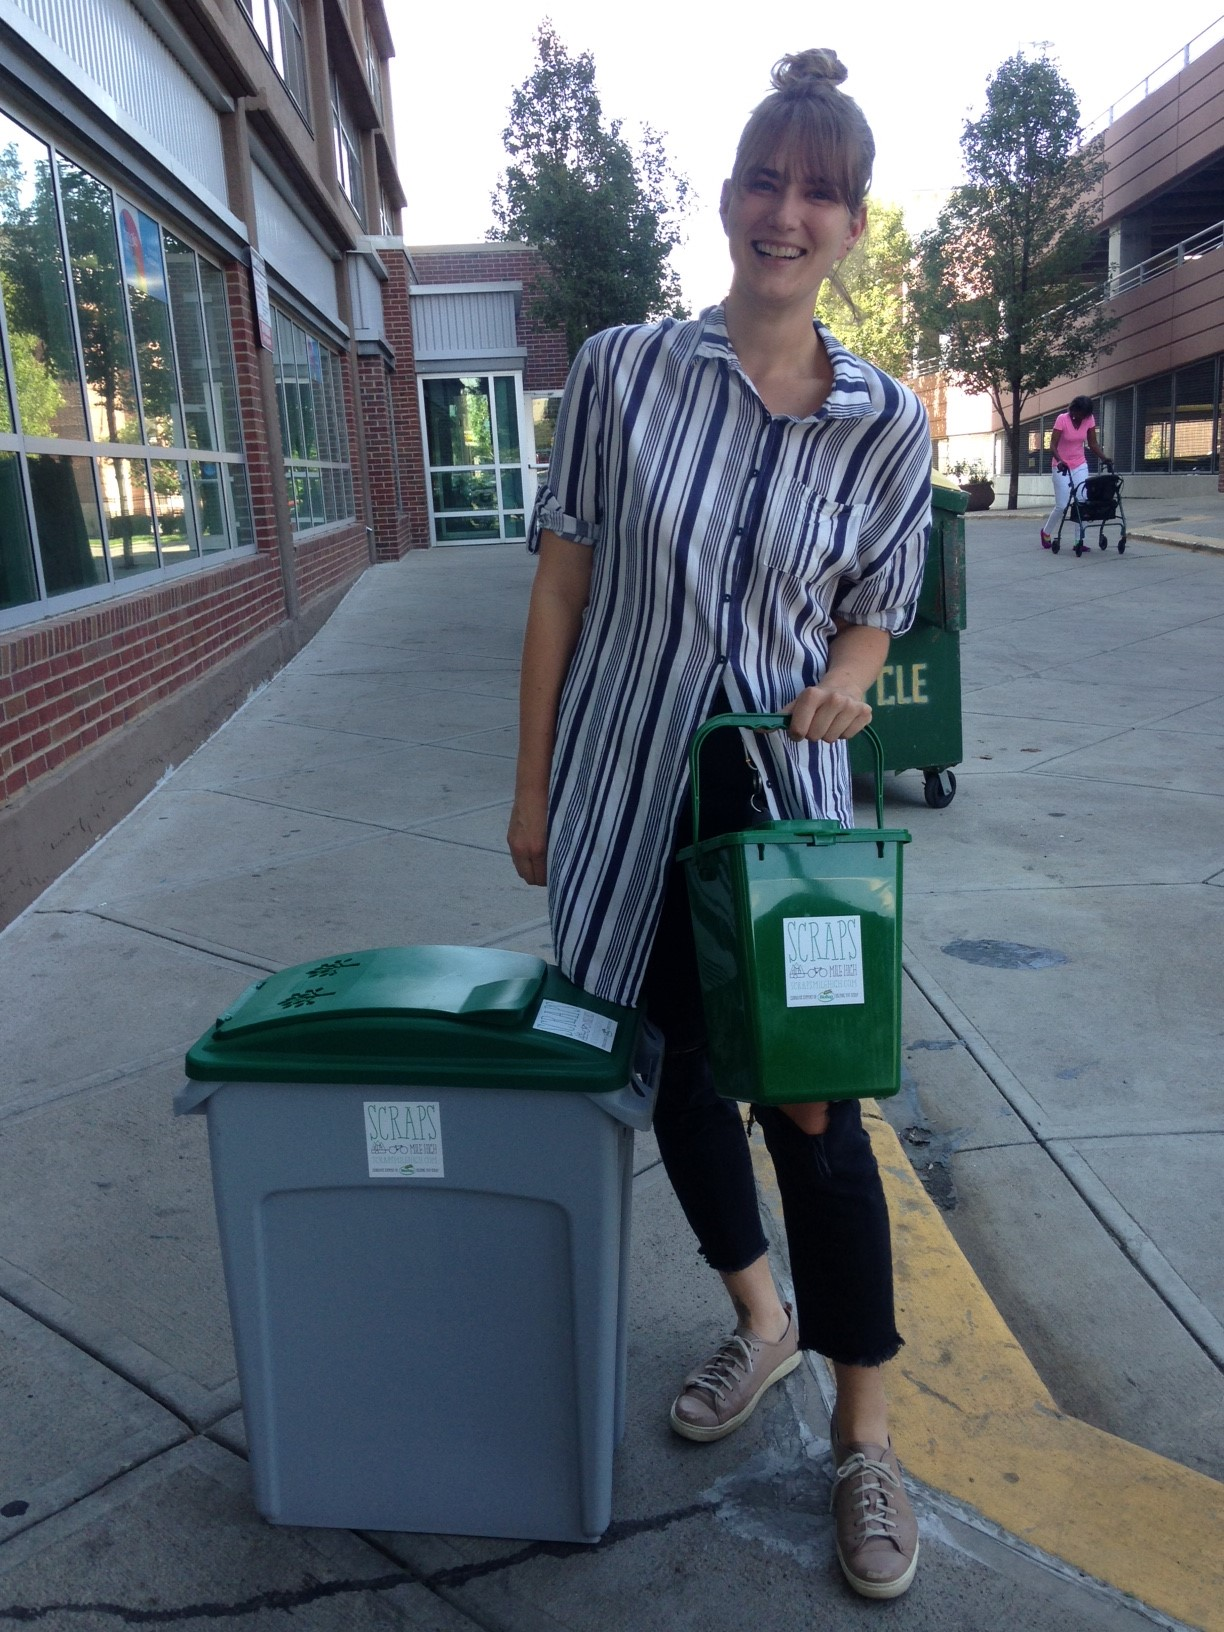 Our Scraps collection bin, standing beside Amy.